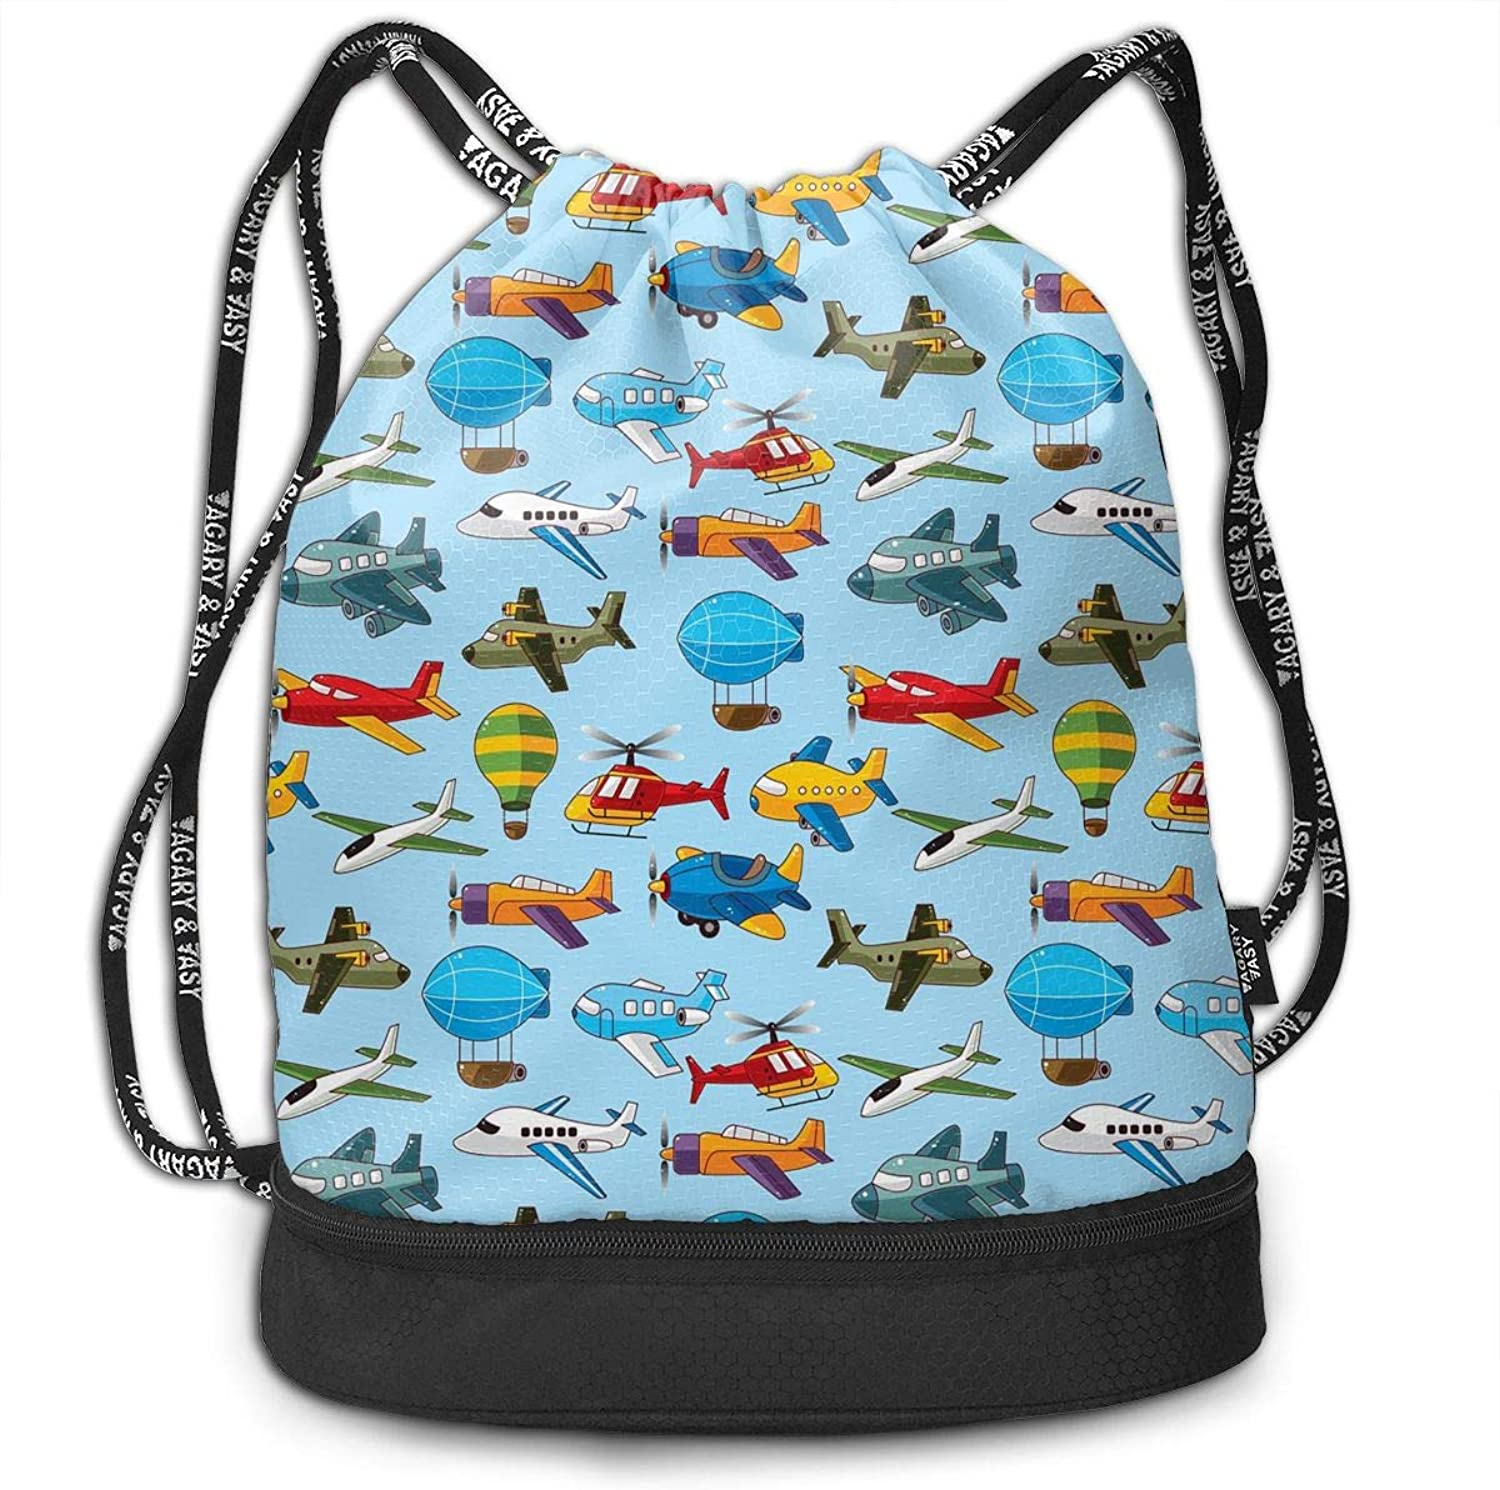 4e98207d Helicopter Plane Print Drawstring Bags Simple Gym Shoulder Bags ...